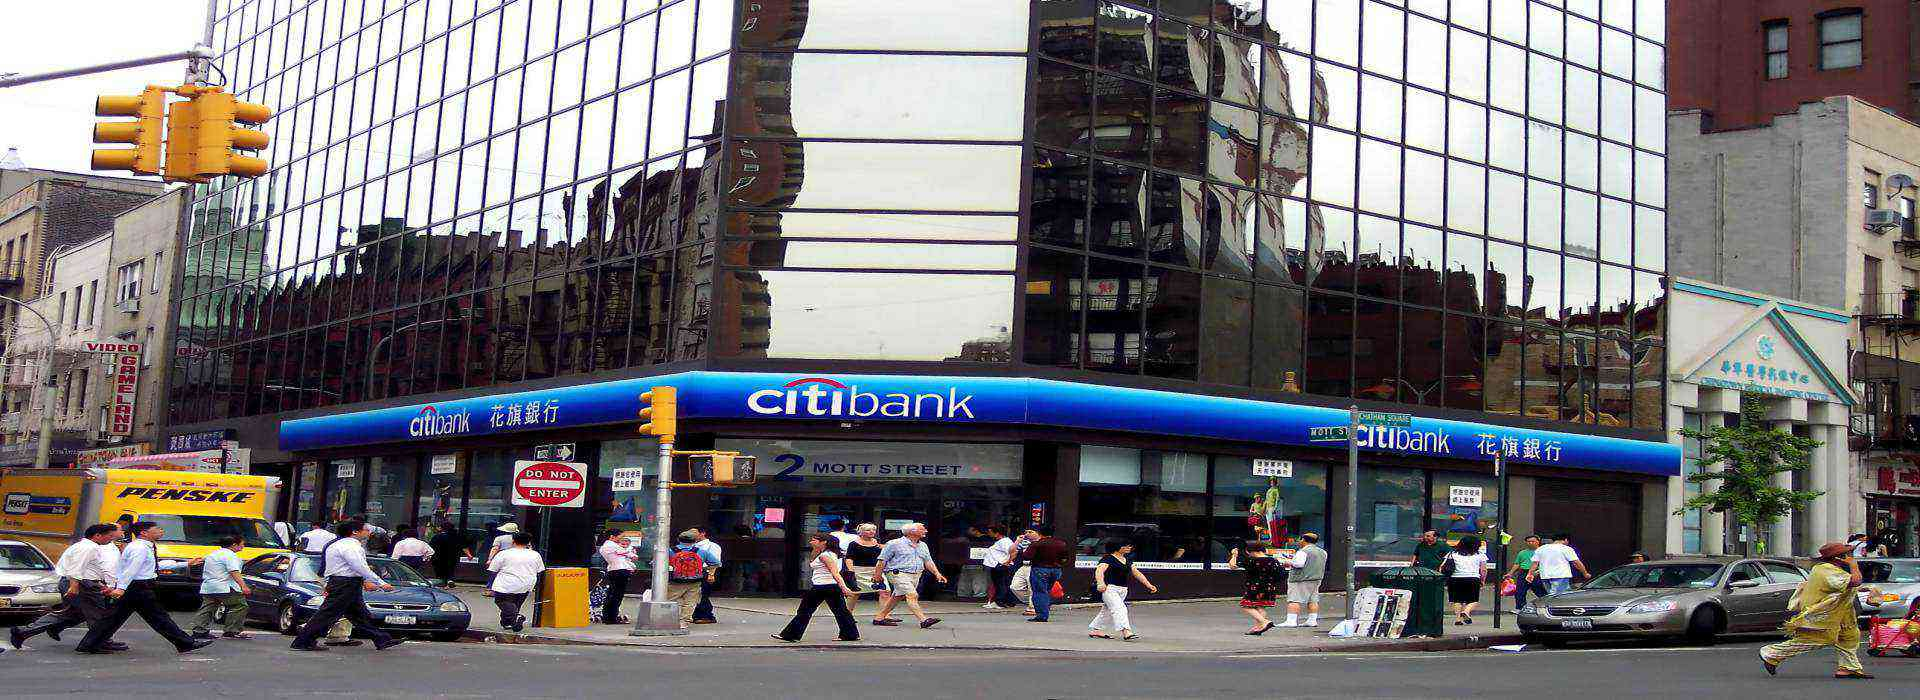 citibank malaysia customer service number  address  email support